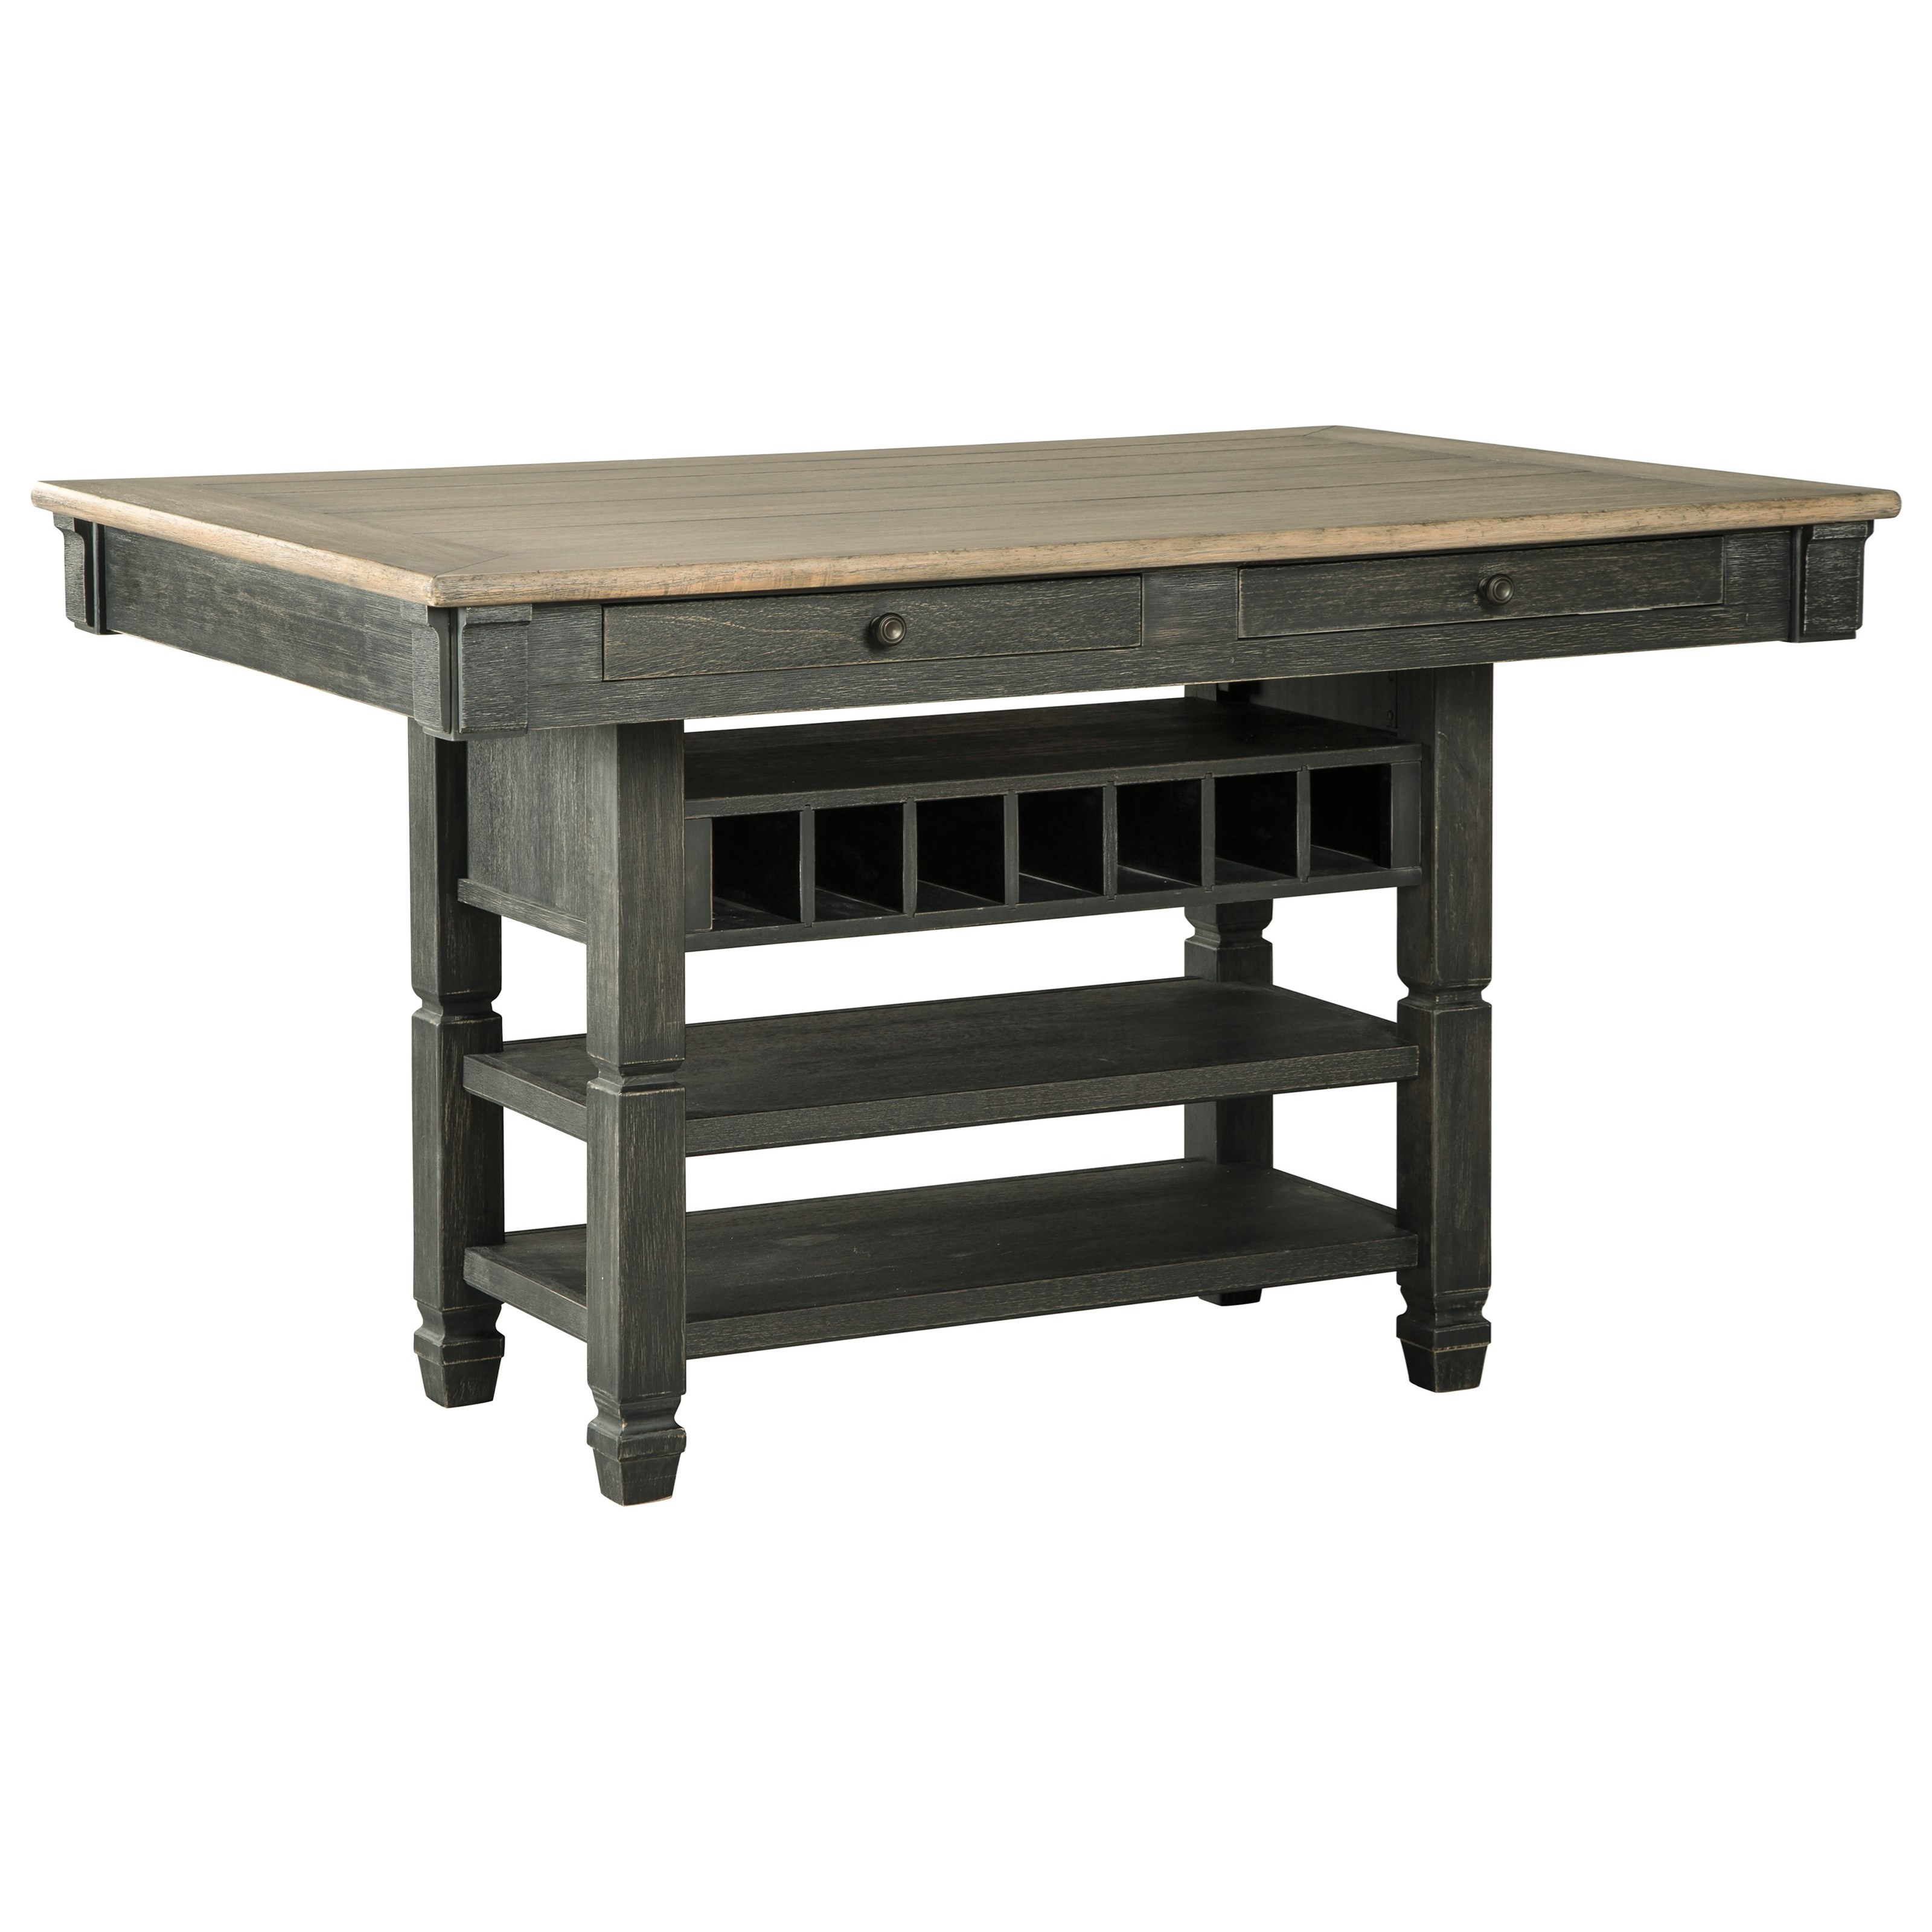 Tyler Creek Rectangular Dining Room Counter Table by Signature Design by Ashley at Suburban Furniture